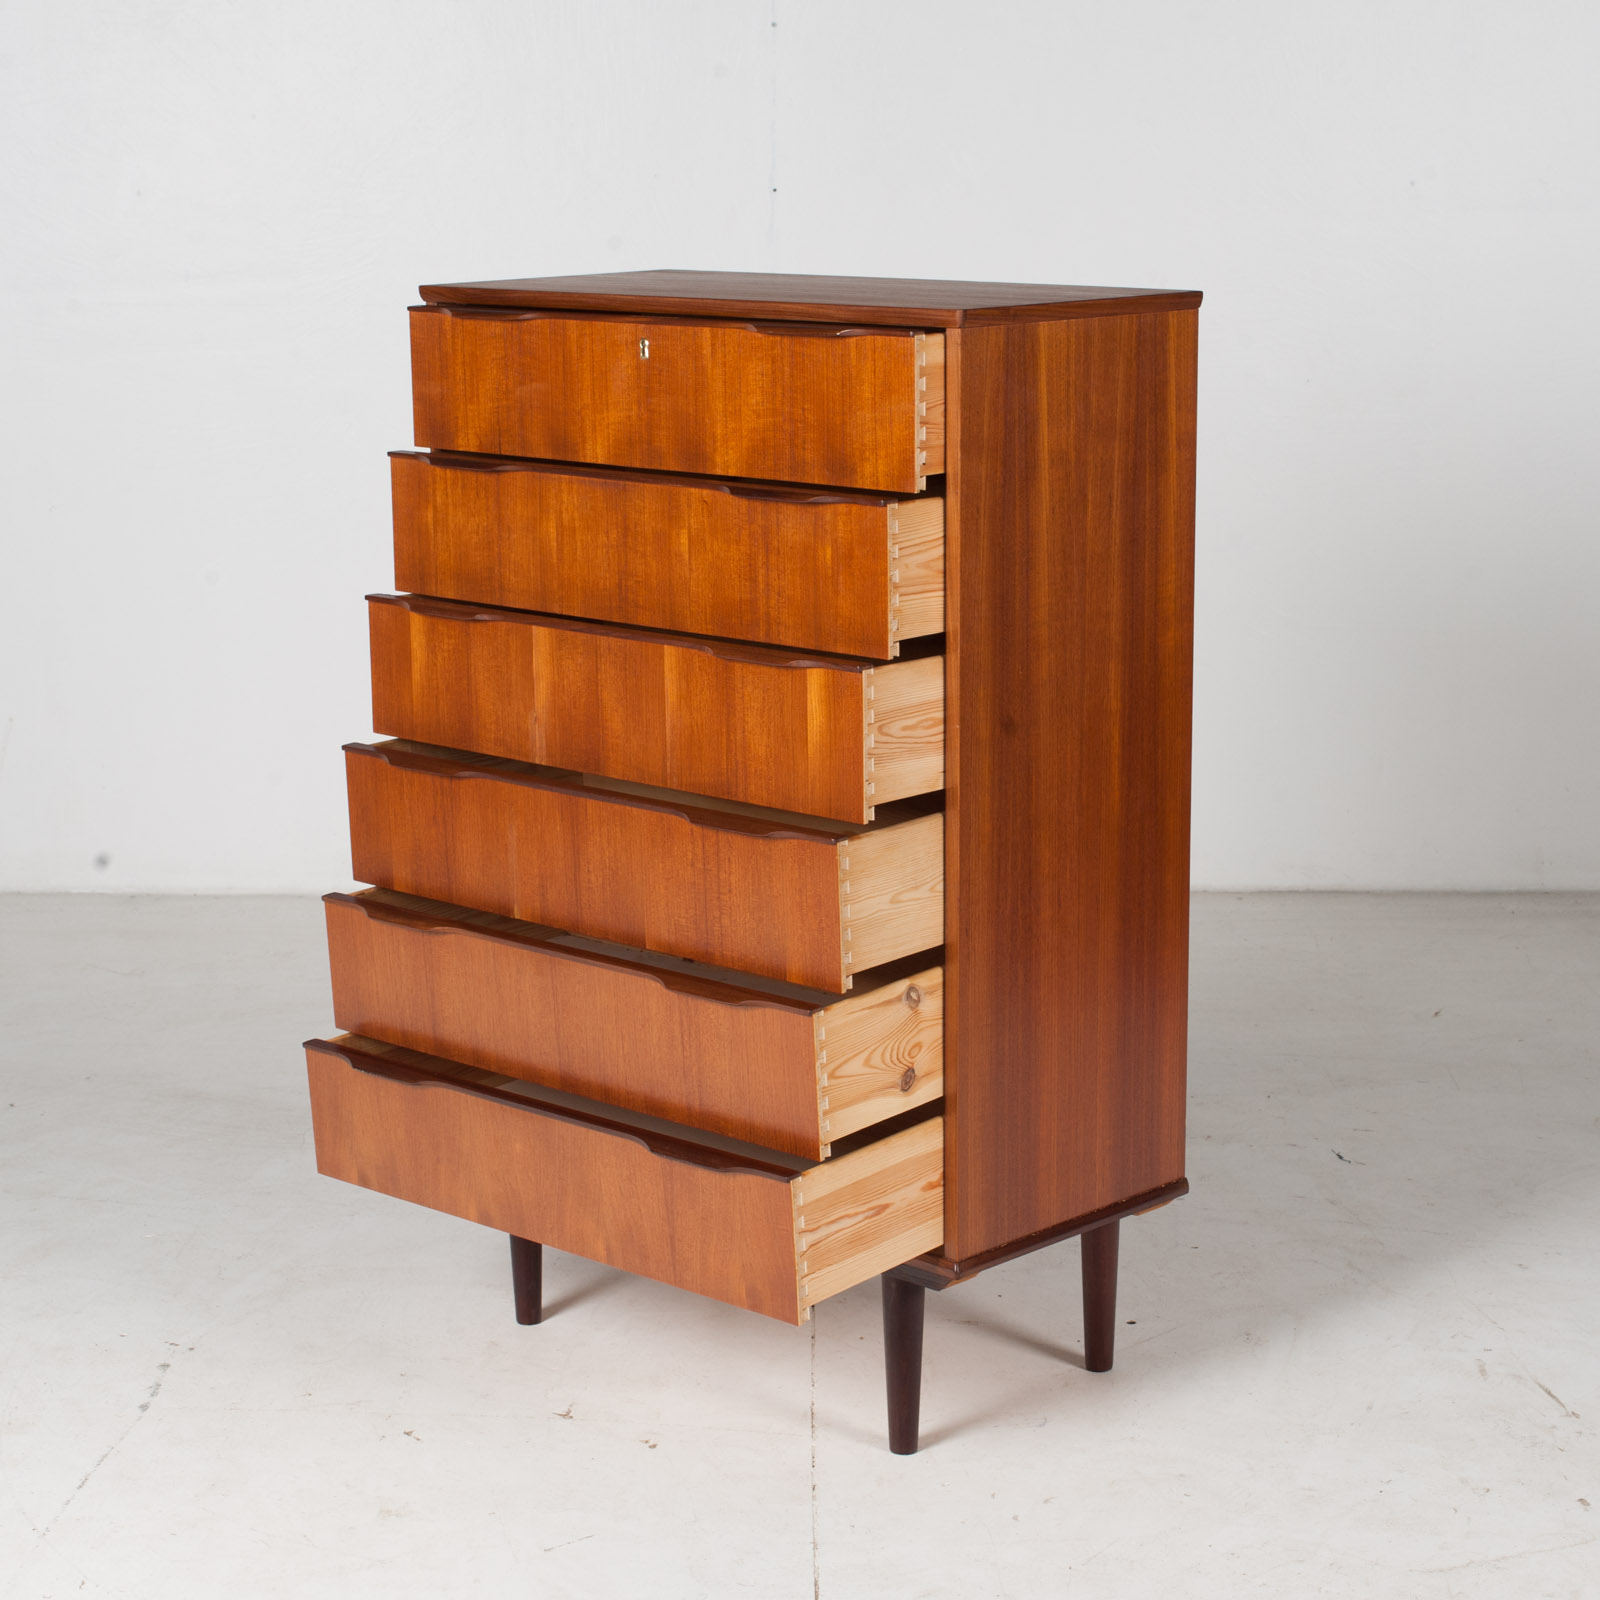 Deep Chest In Teak With Six Drawers And Lipped Handles, 1960s, Denmark5